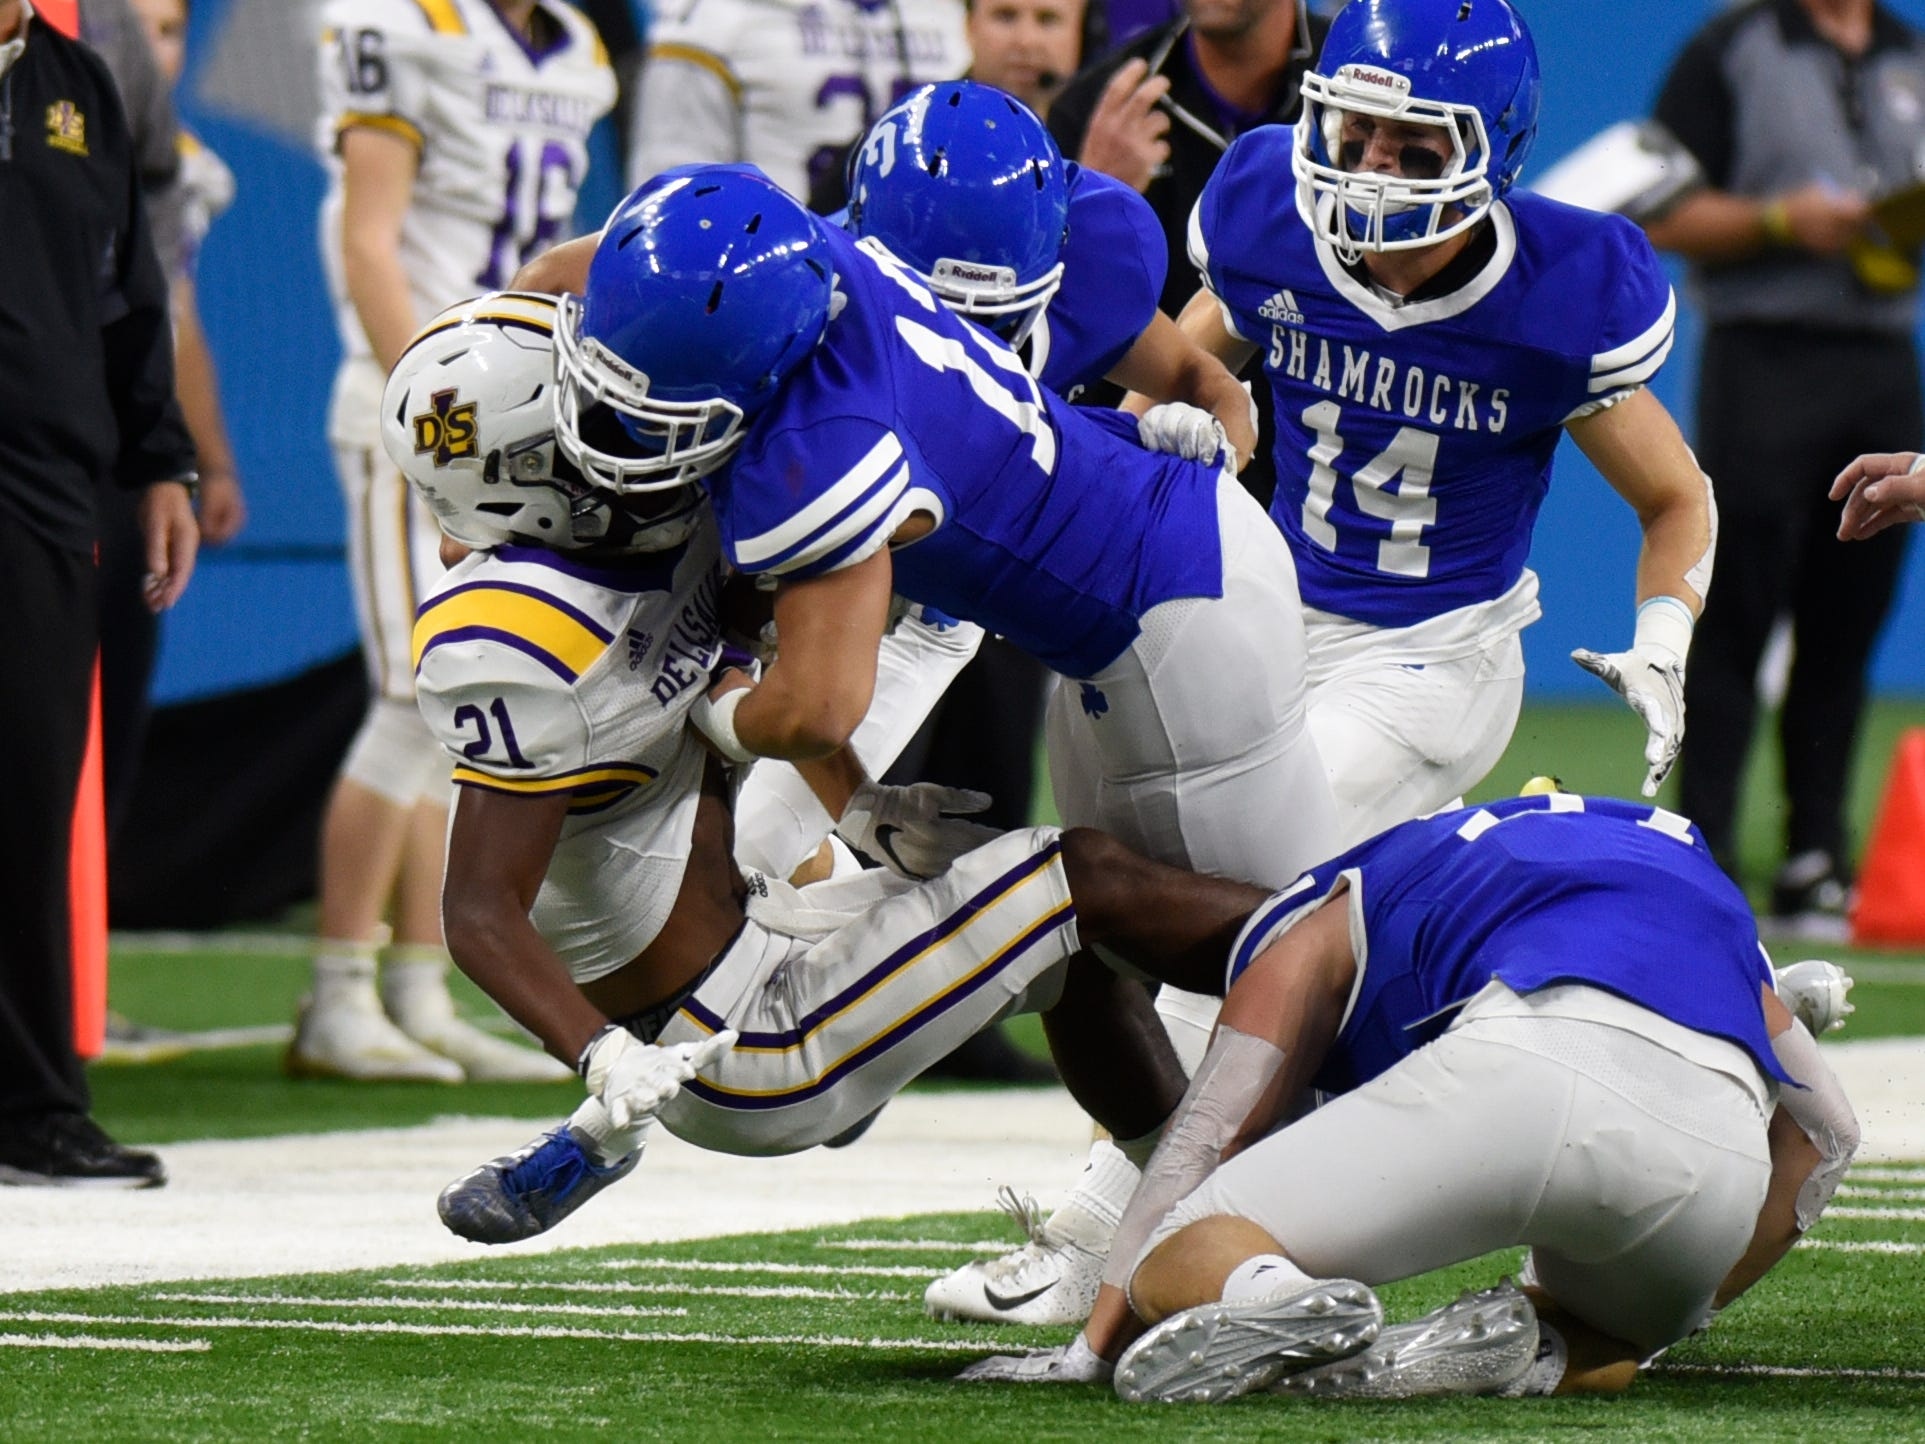 Warren De La Salle's Anthony Stepnitz is tackled by Detroit Catholic Central's Nate Anderson (11) during Catholic League Prep Bowl AB Division championship game at Ford Field Oct. 20, 2018.